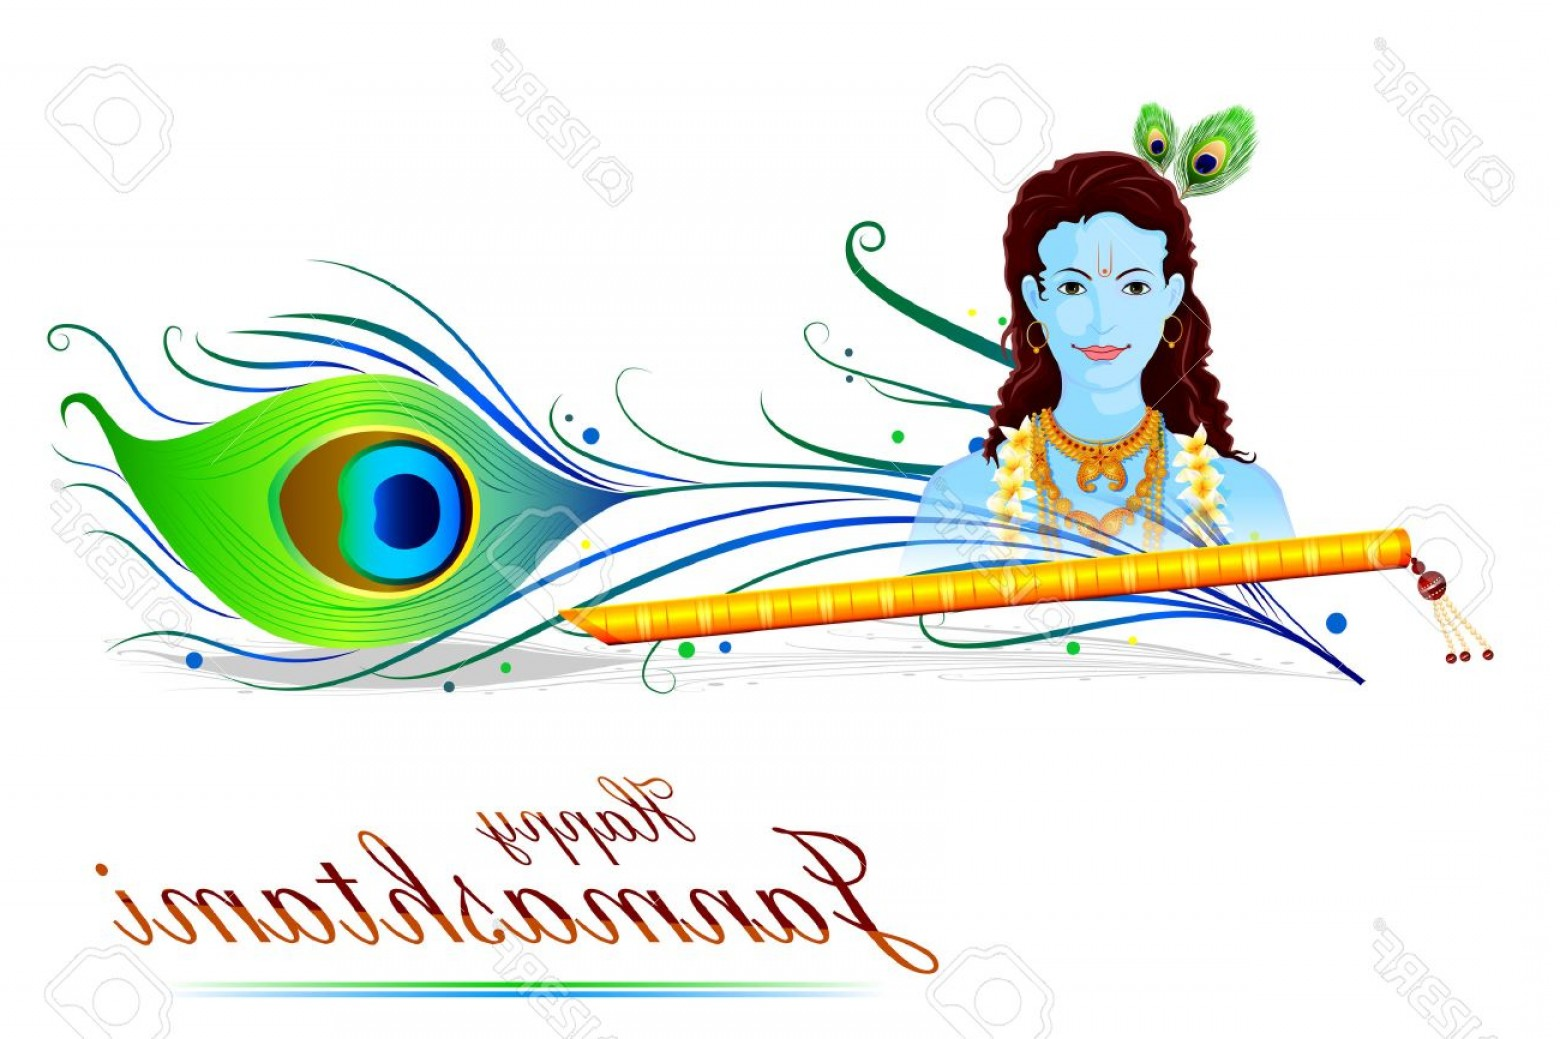 320 Vector: Photostock Vector Easy To Edit Vector Illustration Of Happy Krishna Janmashtami